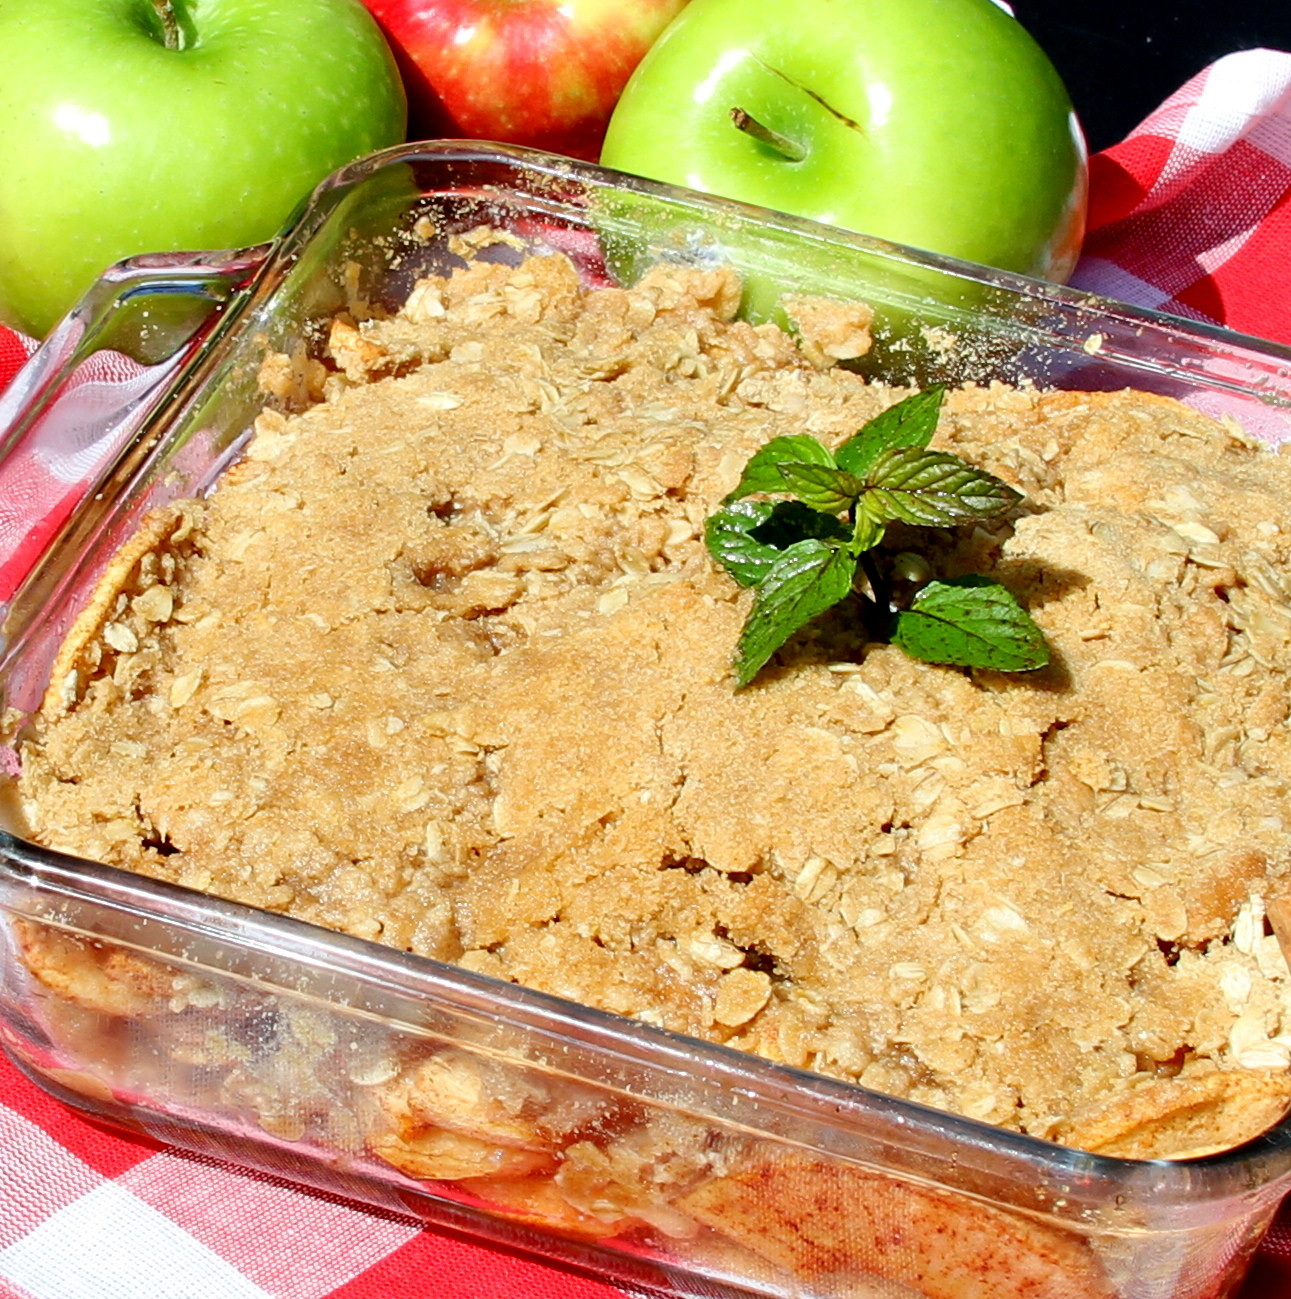 Apple Crisp with Oat Topping in a glass baking dish